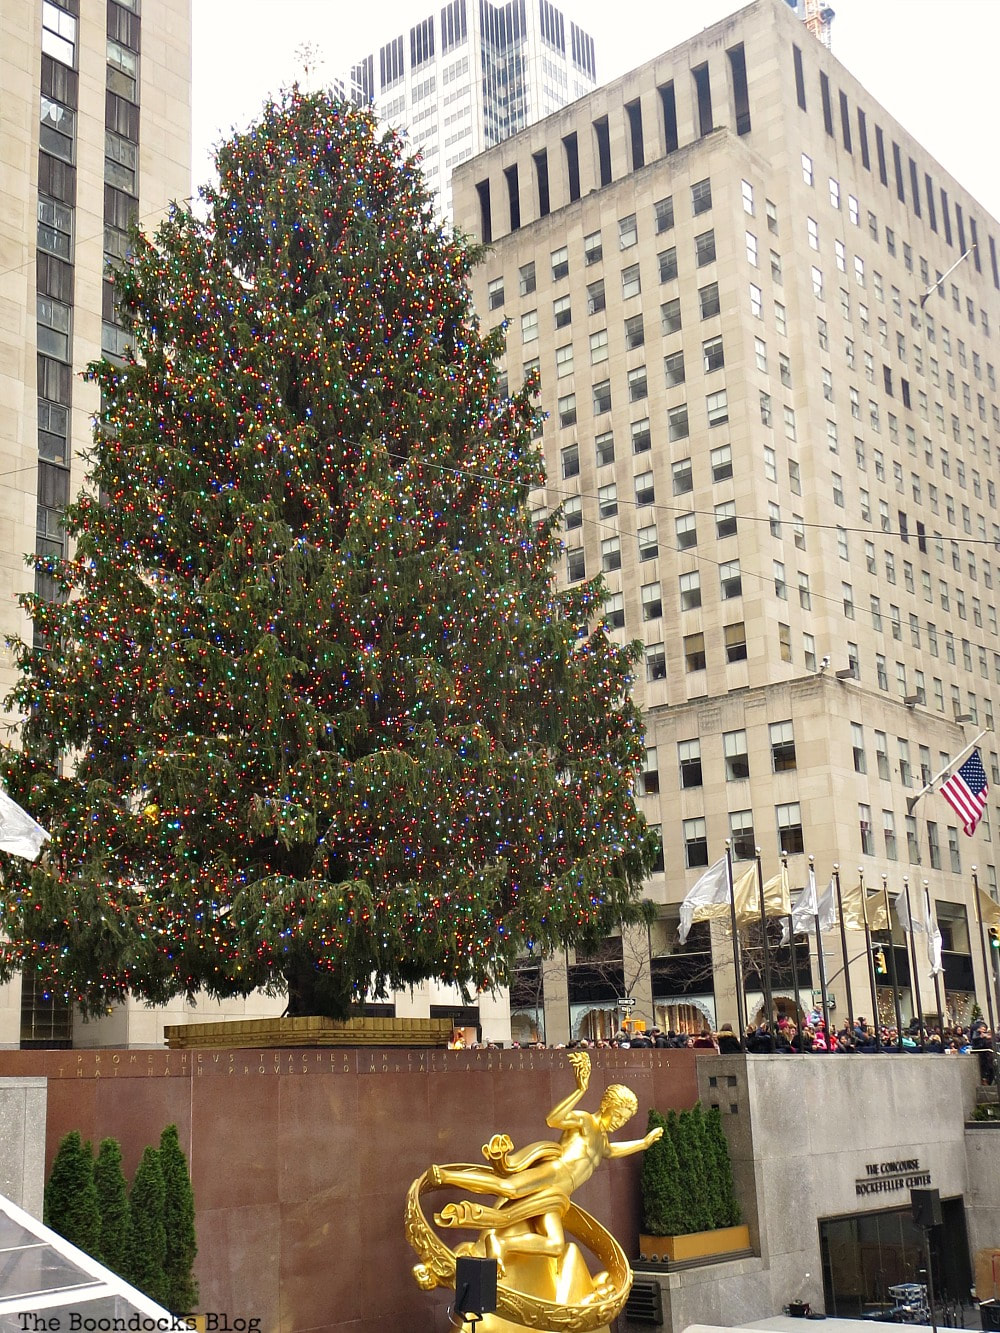 Rockefeller Center Christmas Tree, Four Year Blog Anniversary and an Important Lesson Learned www.theboondocksblog.com